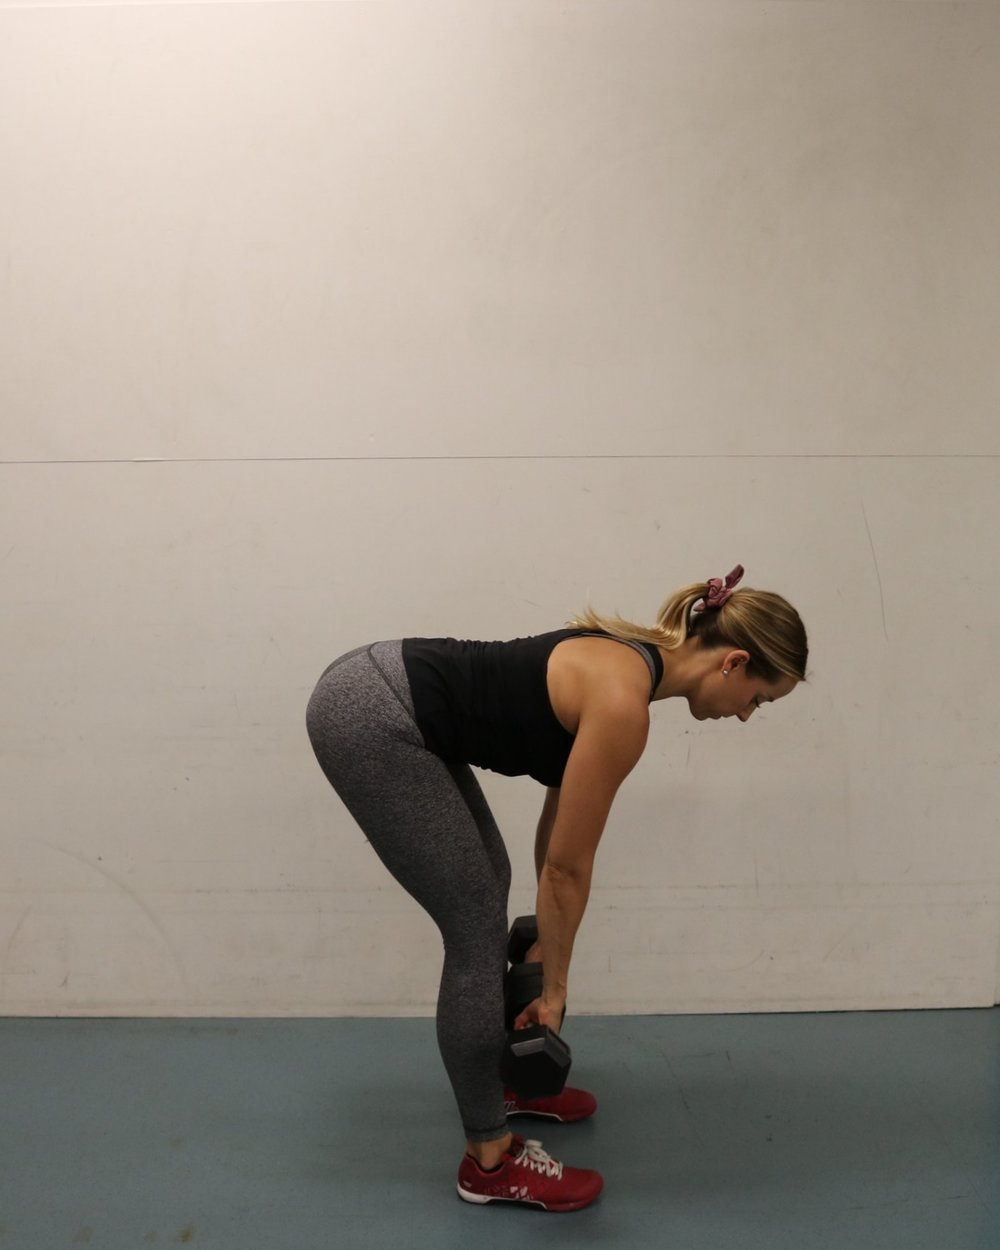 Notice that neutral spine with engaged core to prevent arching or rounding